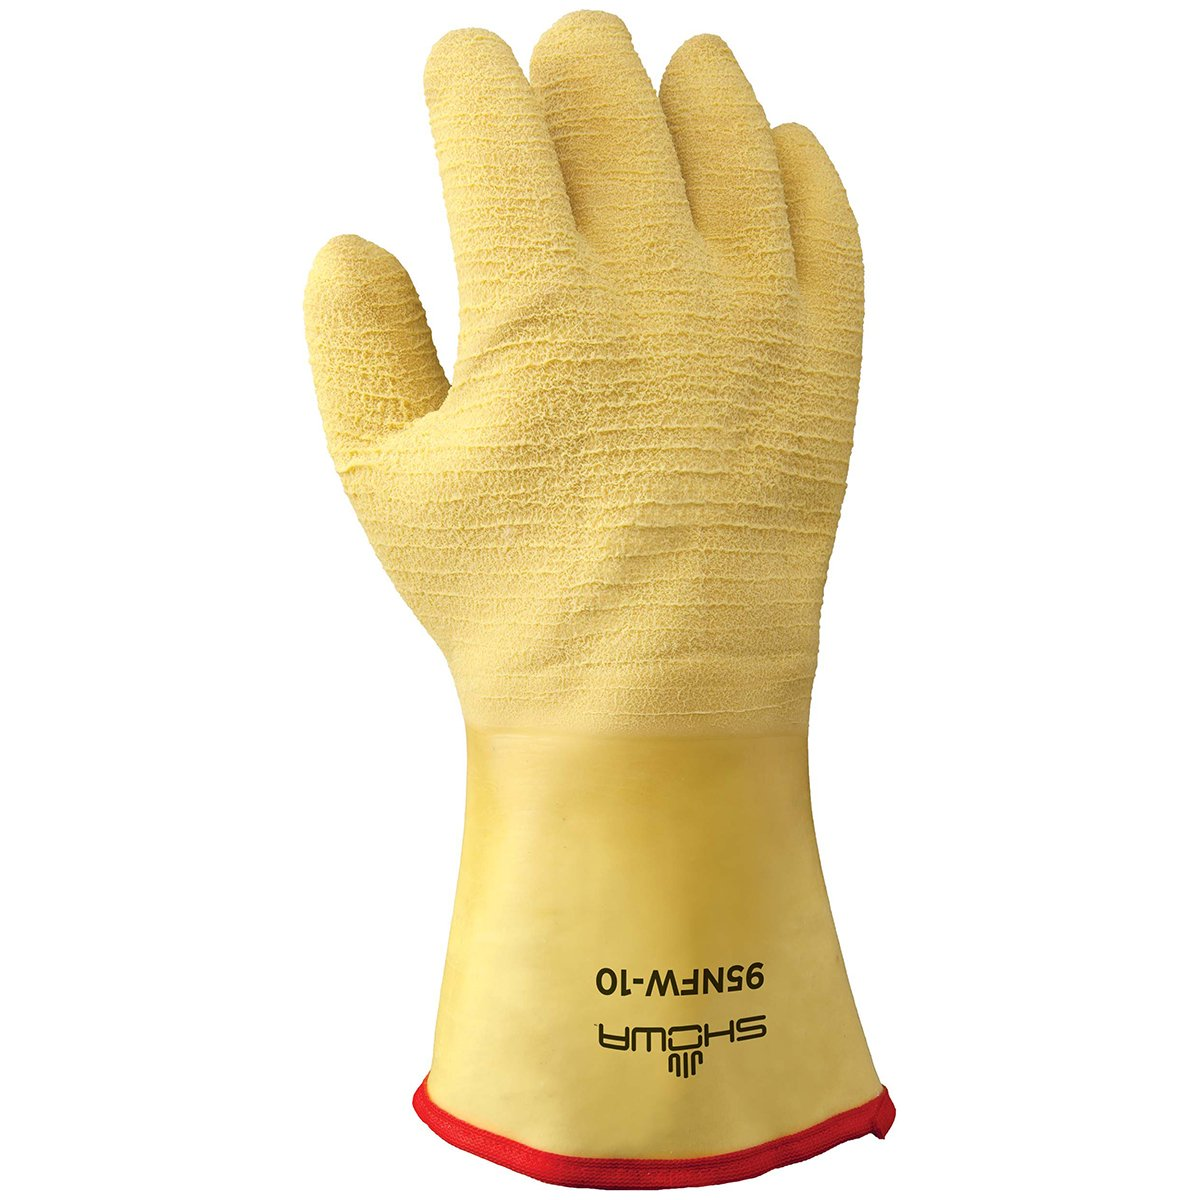 SHOWA 95NFW Insulated Fully Coated Cotton Jersey Natural Rubber Glove, Triple Layered Foam Insulation, General Purpose Work, 12'' Gauntlet, Large (Pack of 12 Pairs)